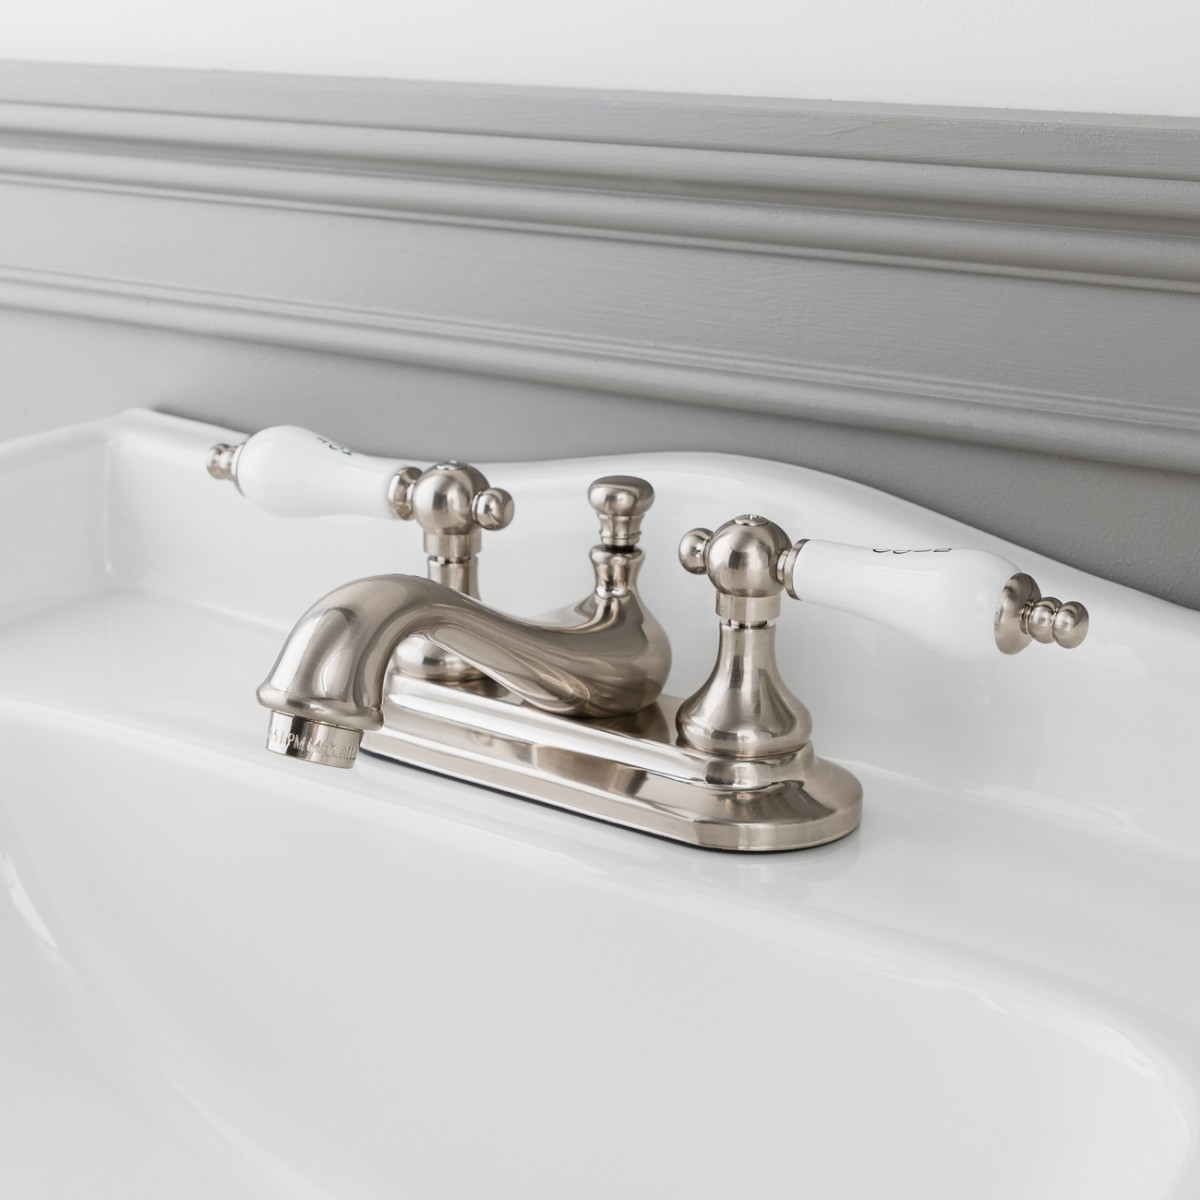 Teapot Centerset Bathroom Sink Faucet Porcelain Lever Handles throughout proportions 1200 X 1200